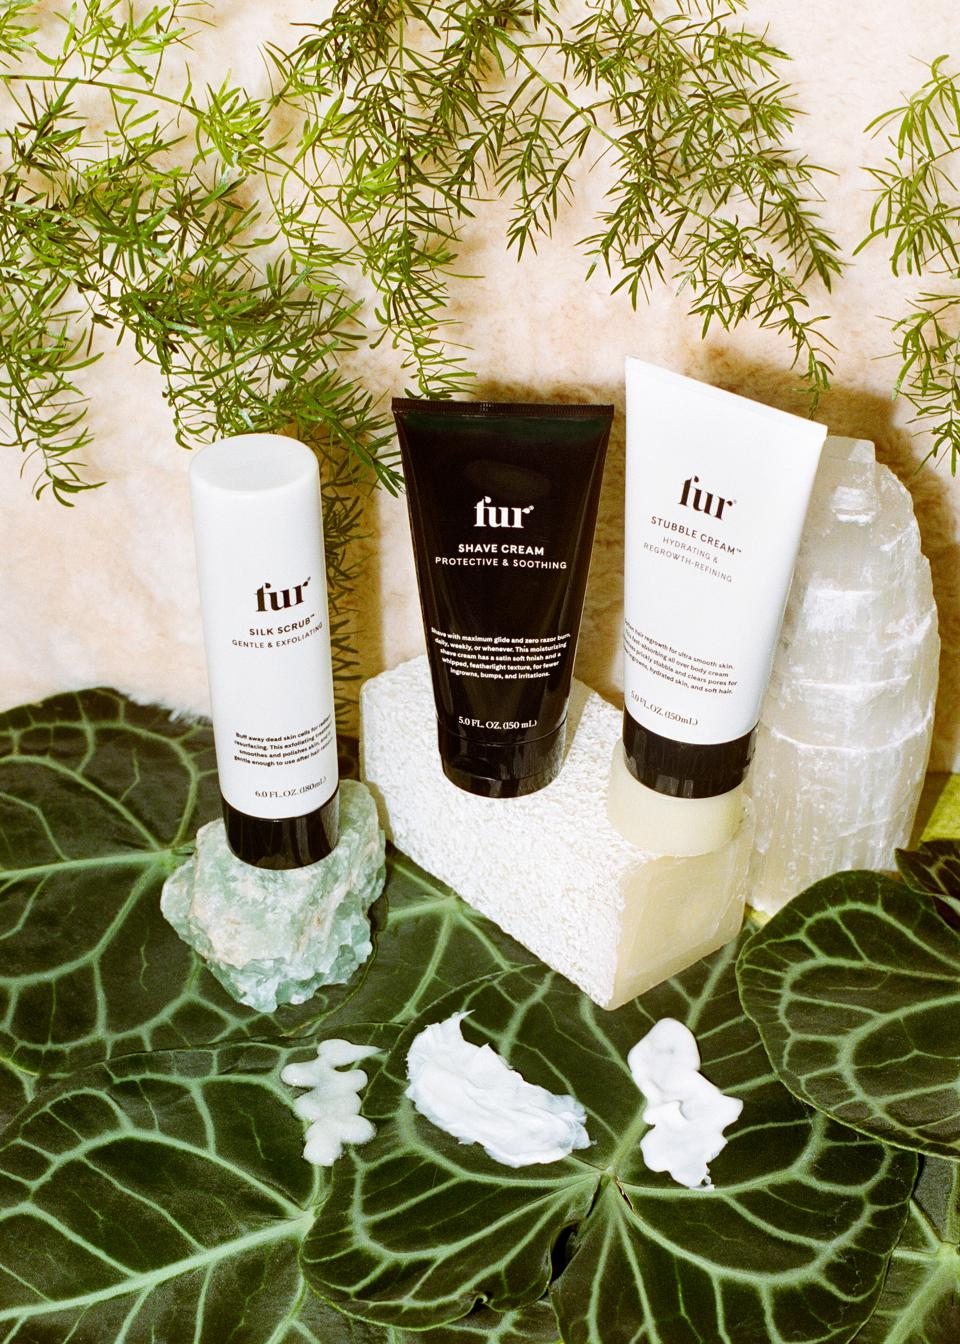 Three full sized Fur products of Silk Scrub, Shave Cream and Stubble Cream that work together to prep and protect for smooth & hydrated skin.